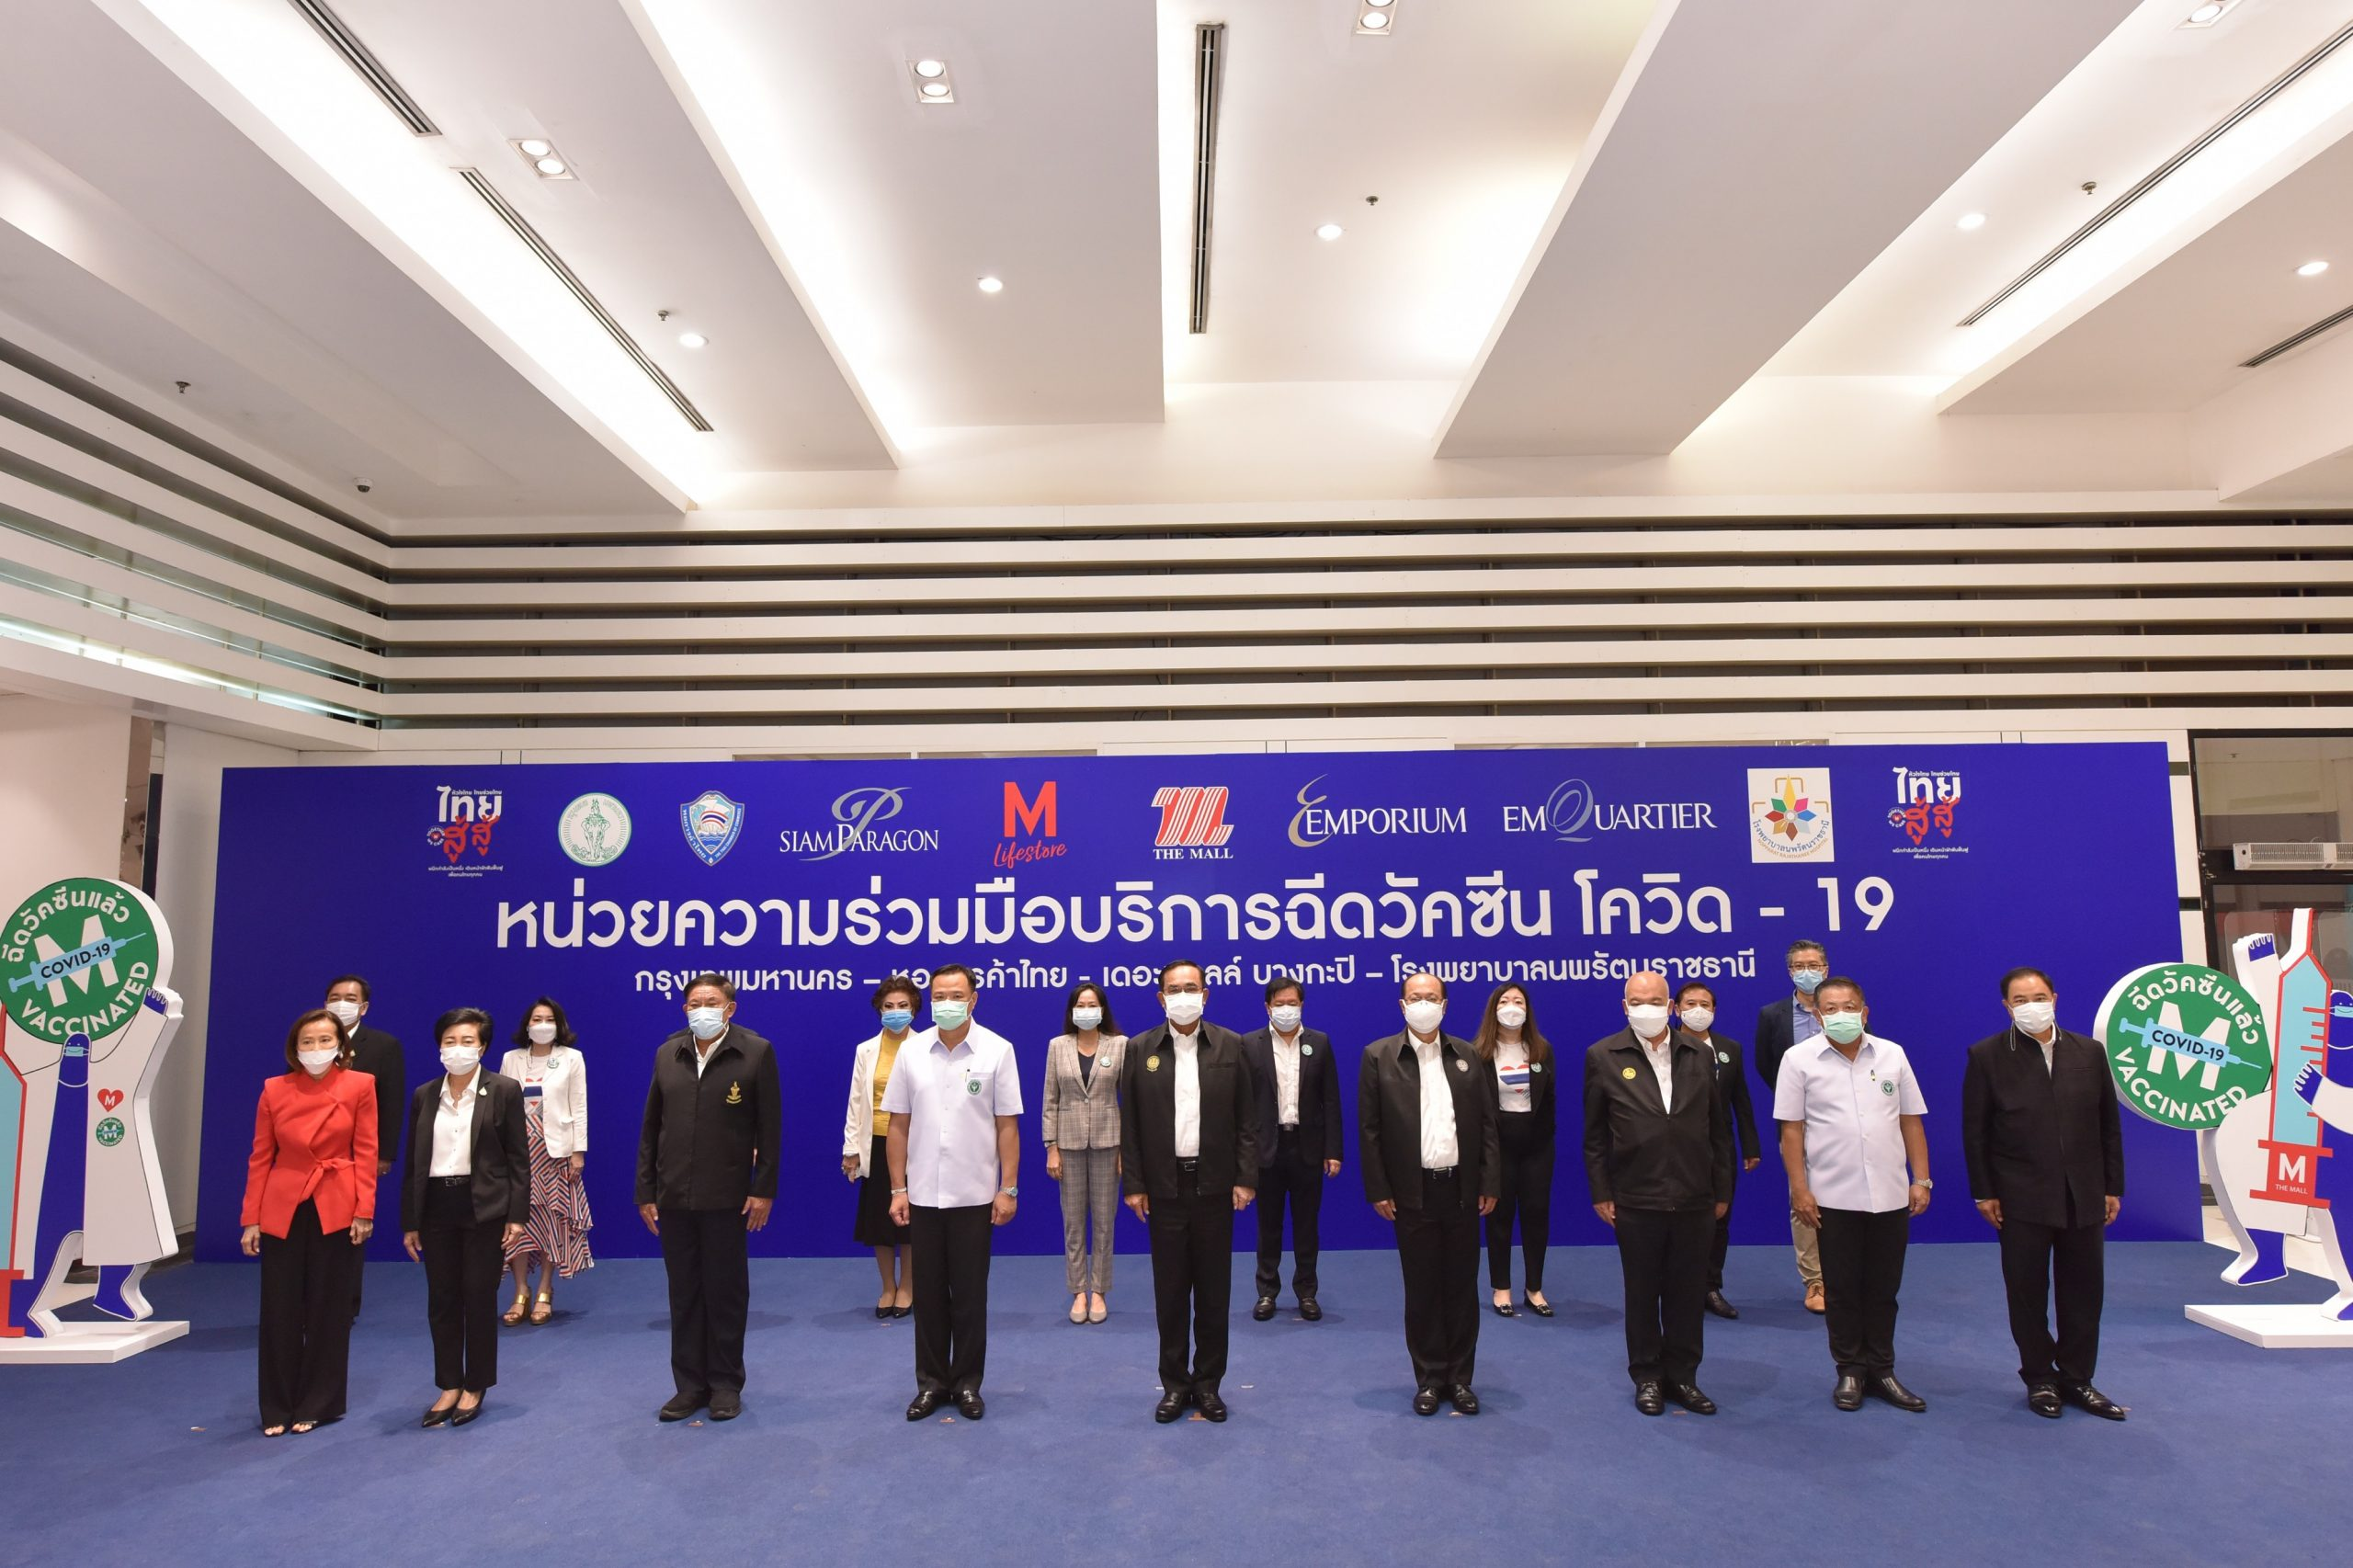 Prayut Attends Inspection Visit at The Mall Bangkapi COVID-19 Vaccination Site